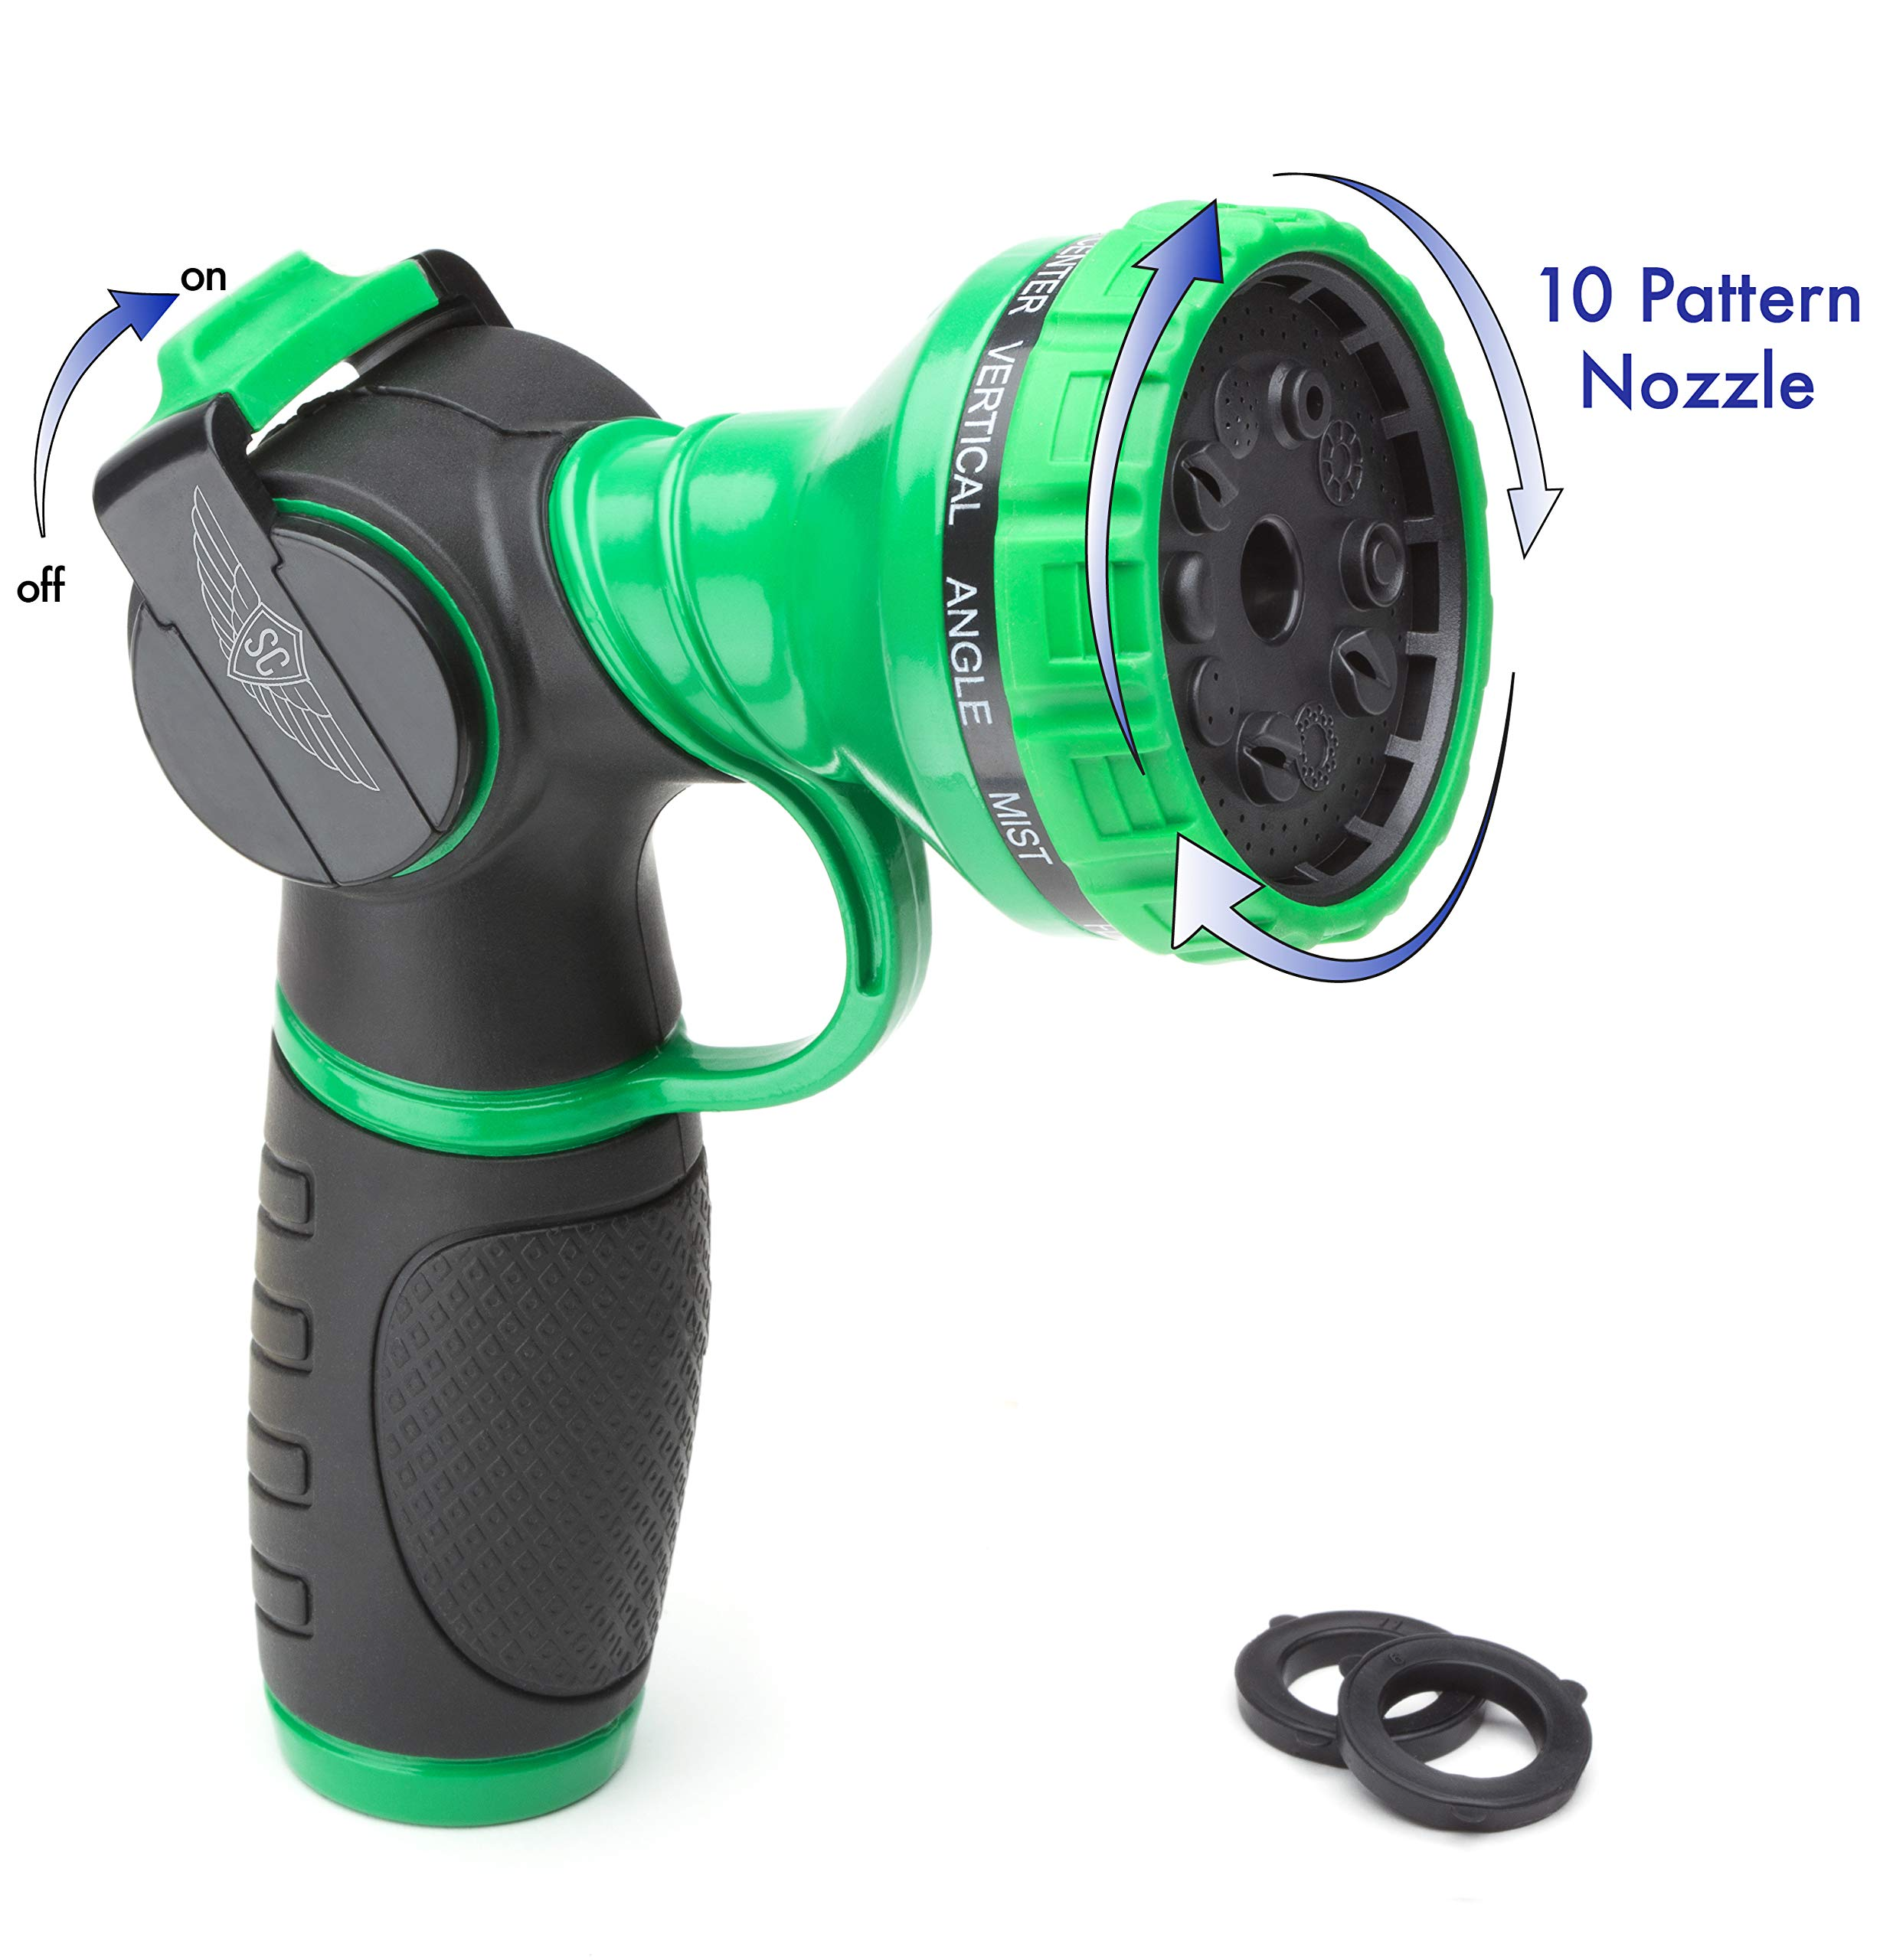 SC Water Metal Garden Hose Nozzle Anti Leak Heavy Duty 10 Pattern Anti Rust No Squeeze Sprayer High Pressure Attachment Car Wash Pet Shower Watering Plants + 1 Year Manufacturing Warranty